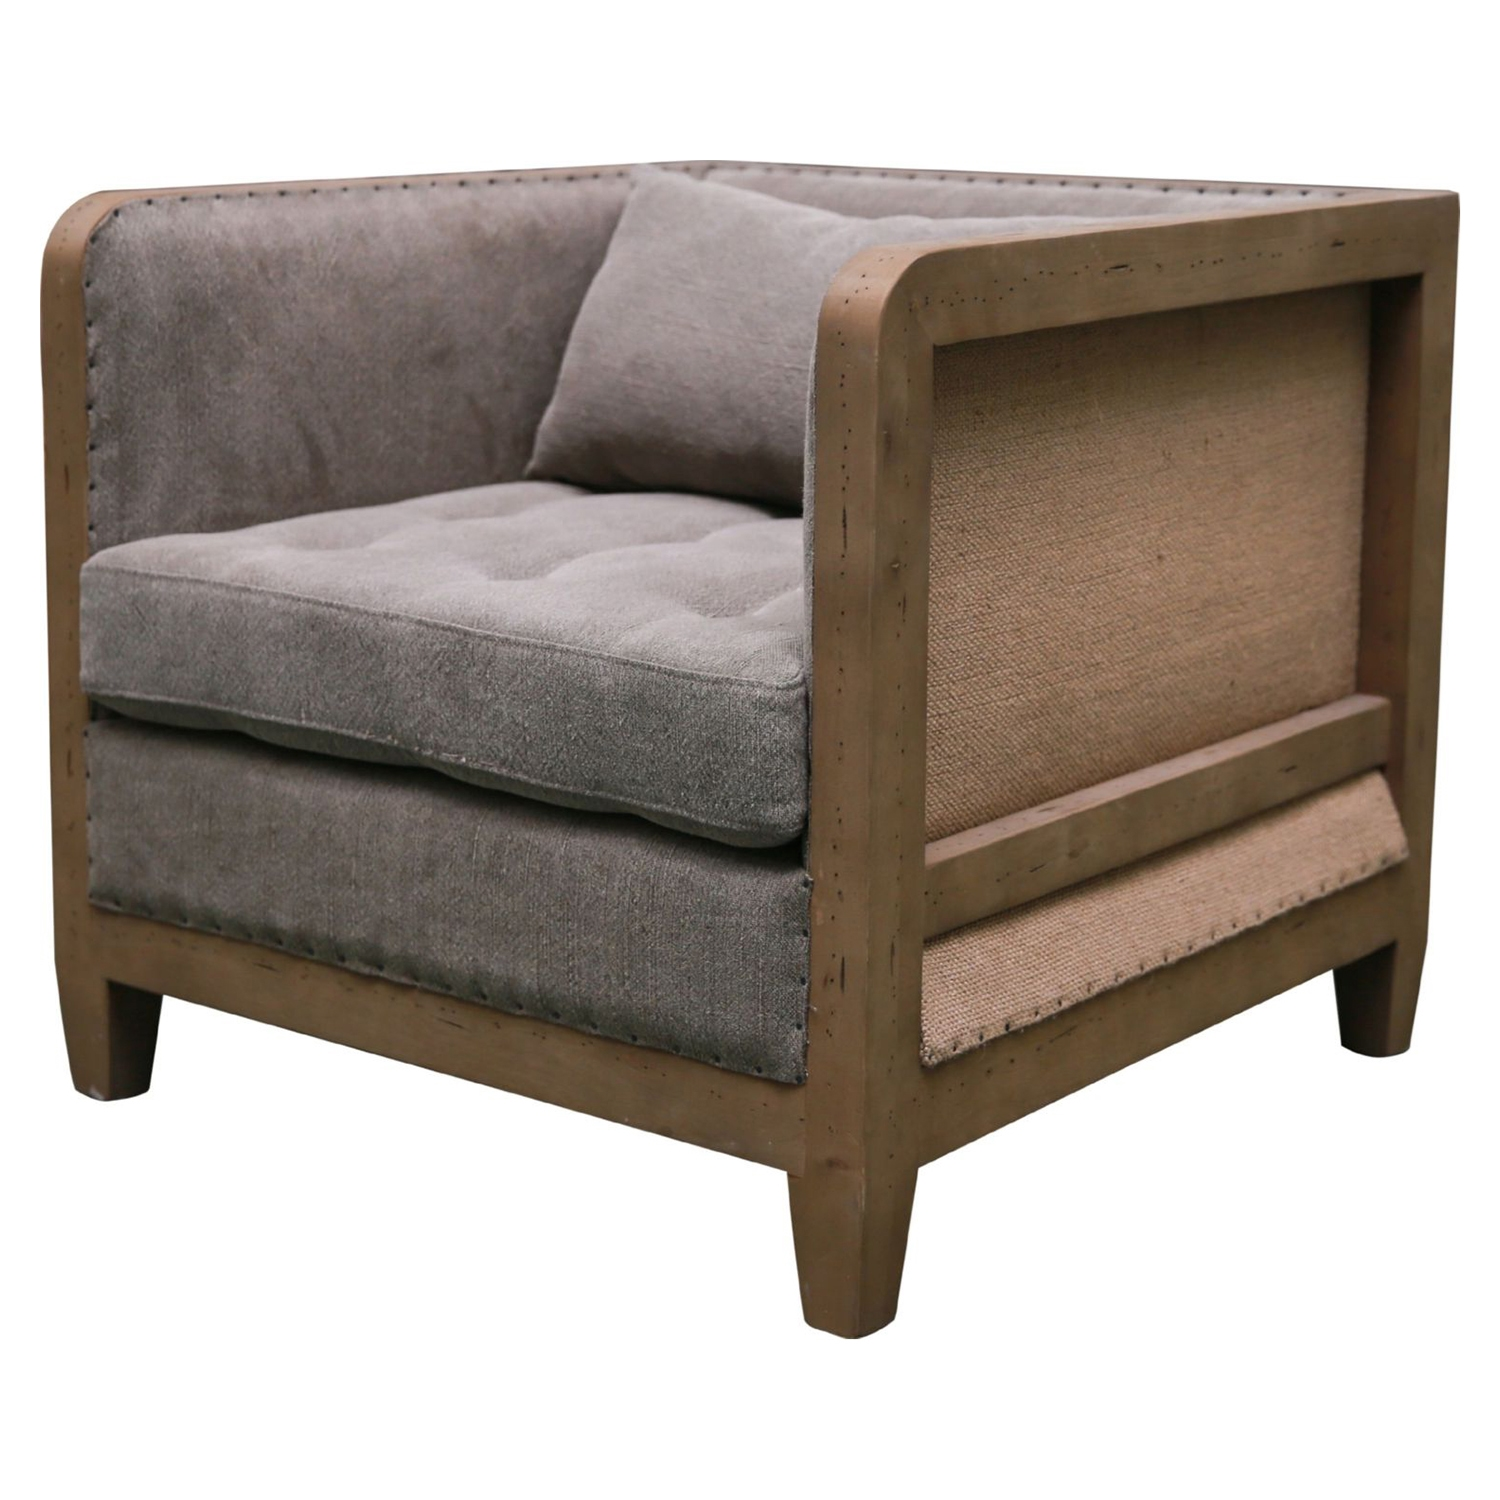 Cosette Club Chair - Tufted, Gray - MOES-SX-1016-25